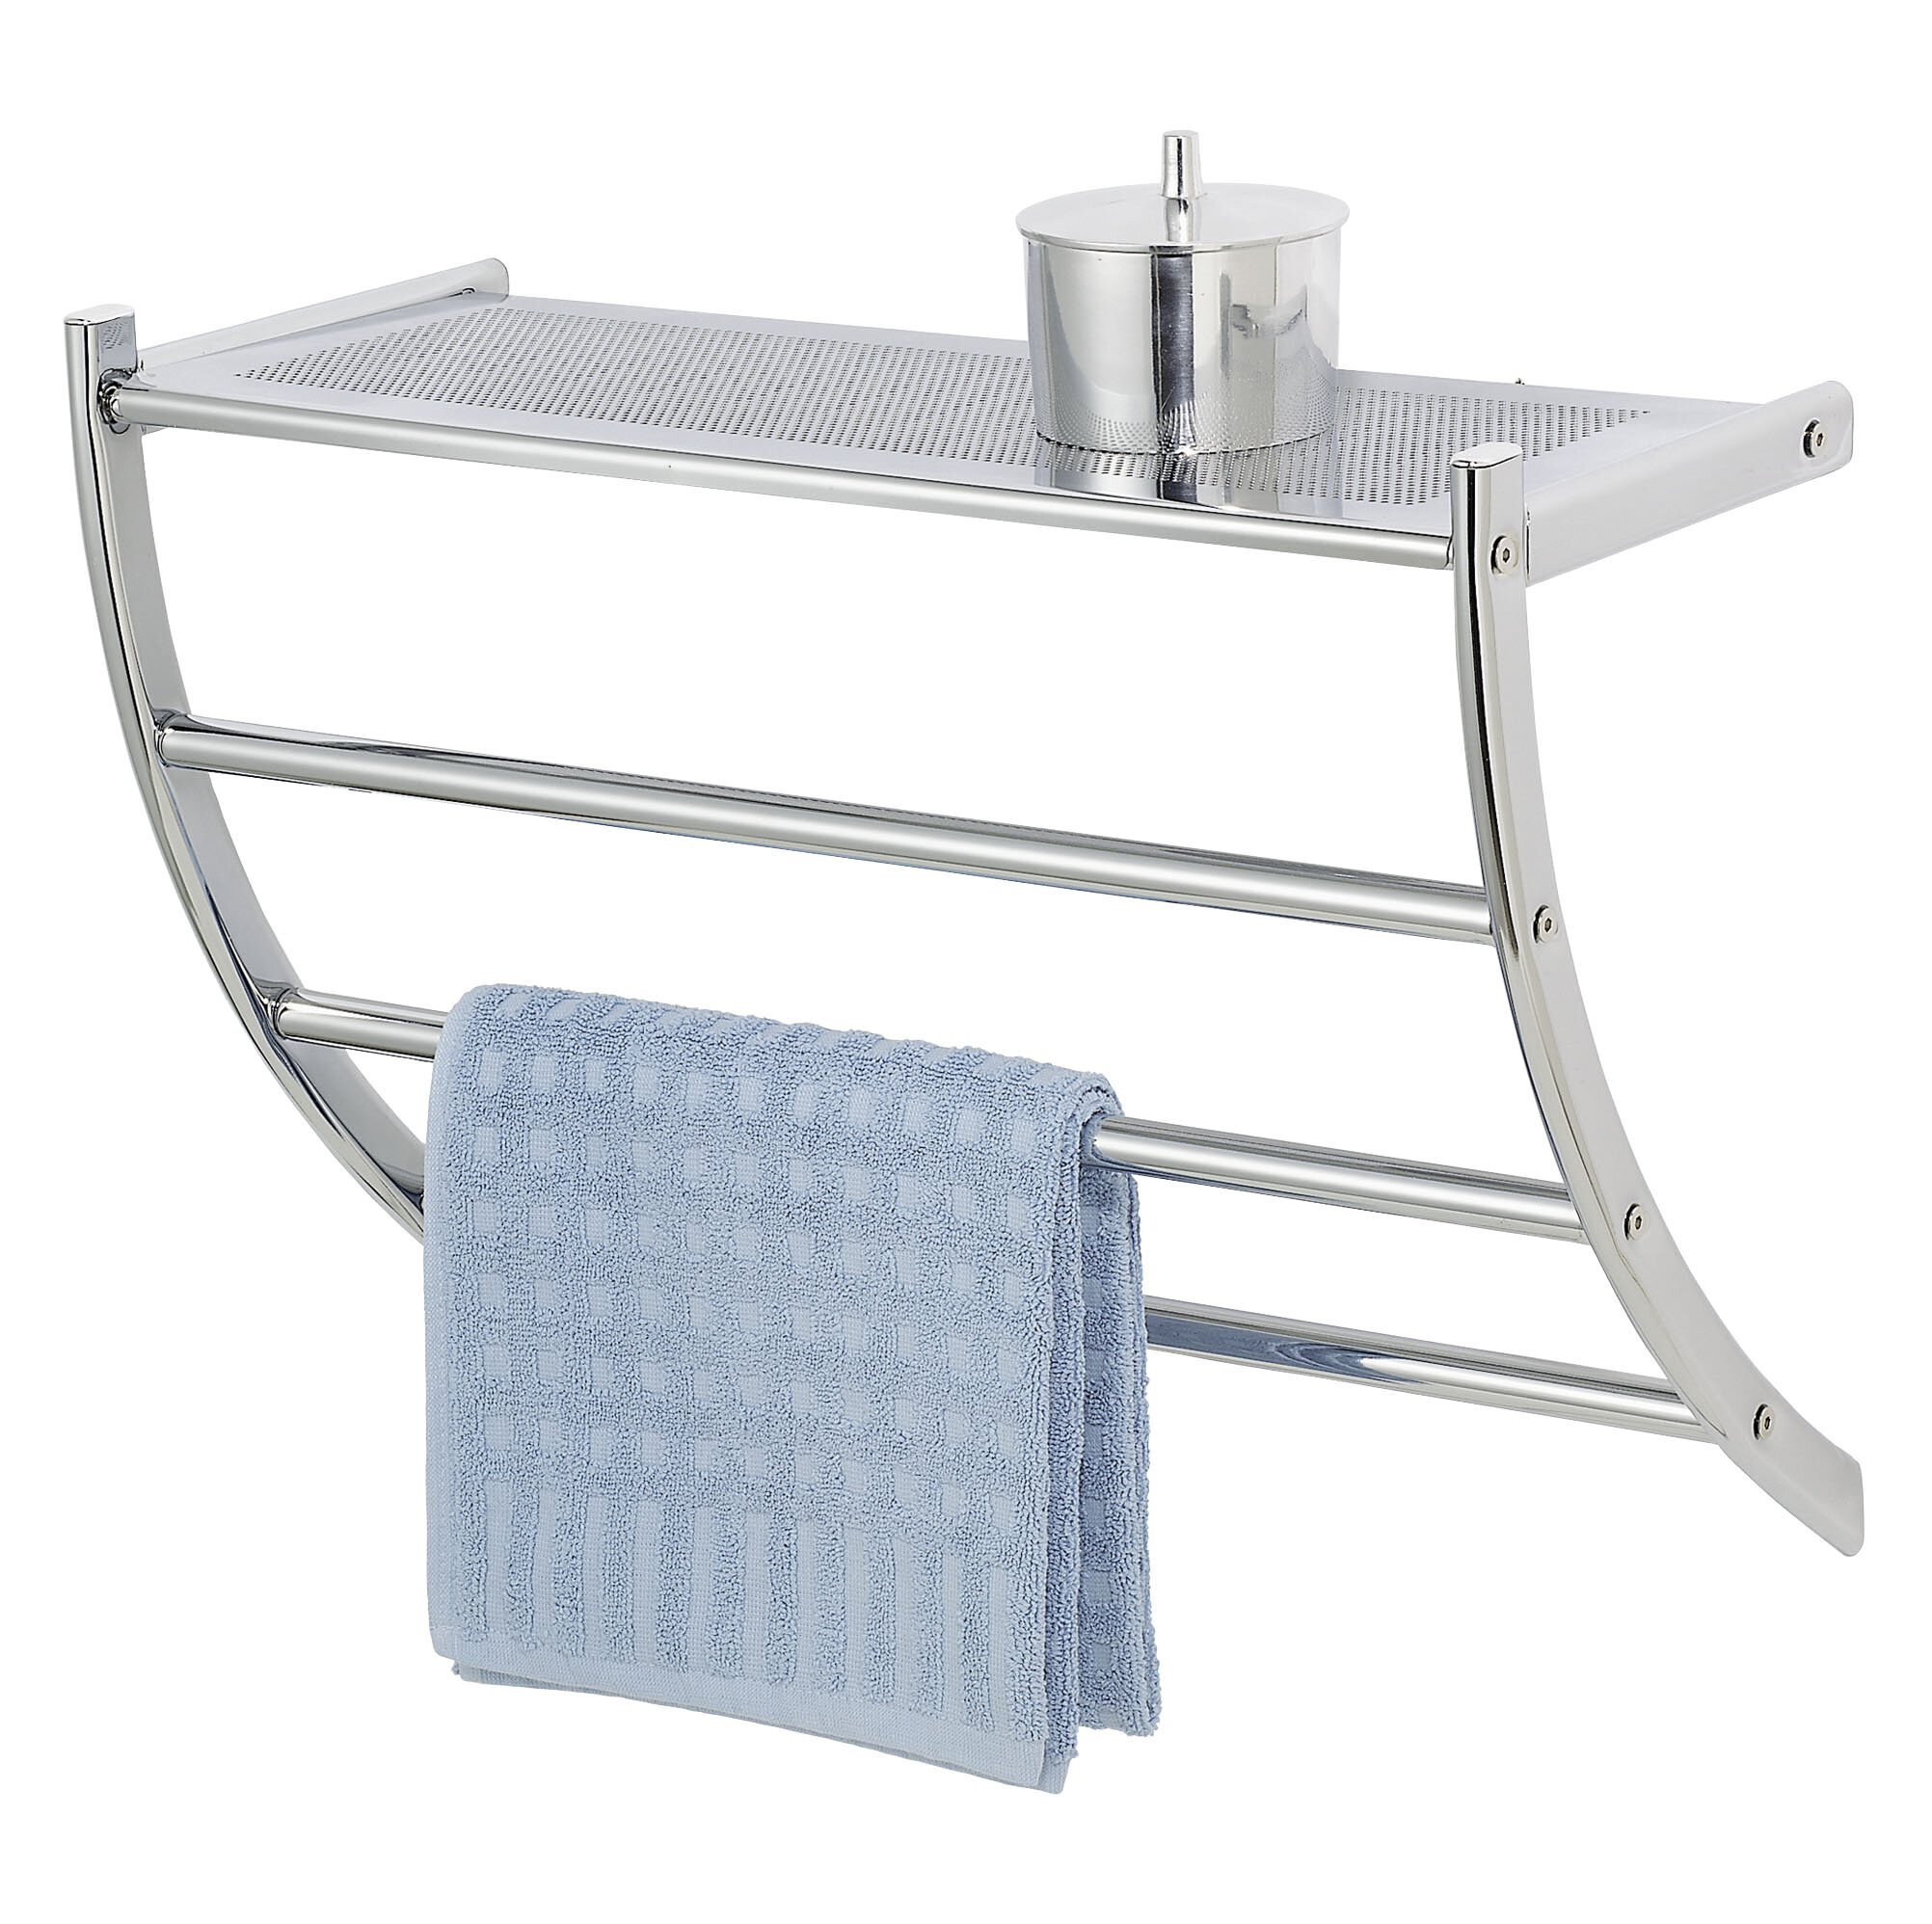 Wenko Pescara Wall Mounted Exclusive Shelf and Towel Rail & Reviews ...